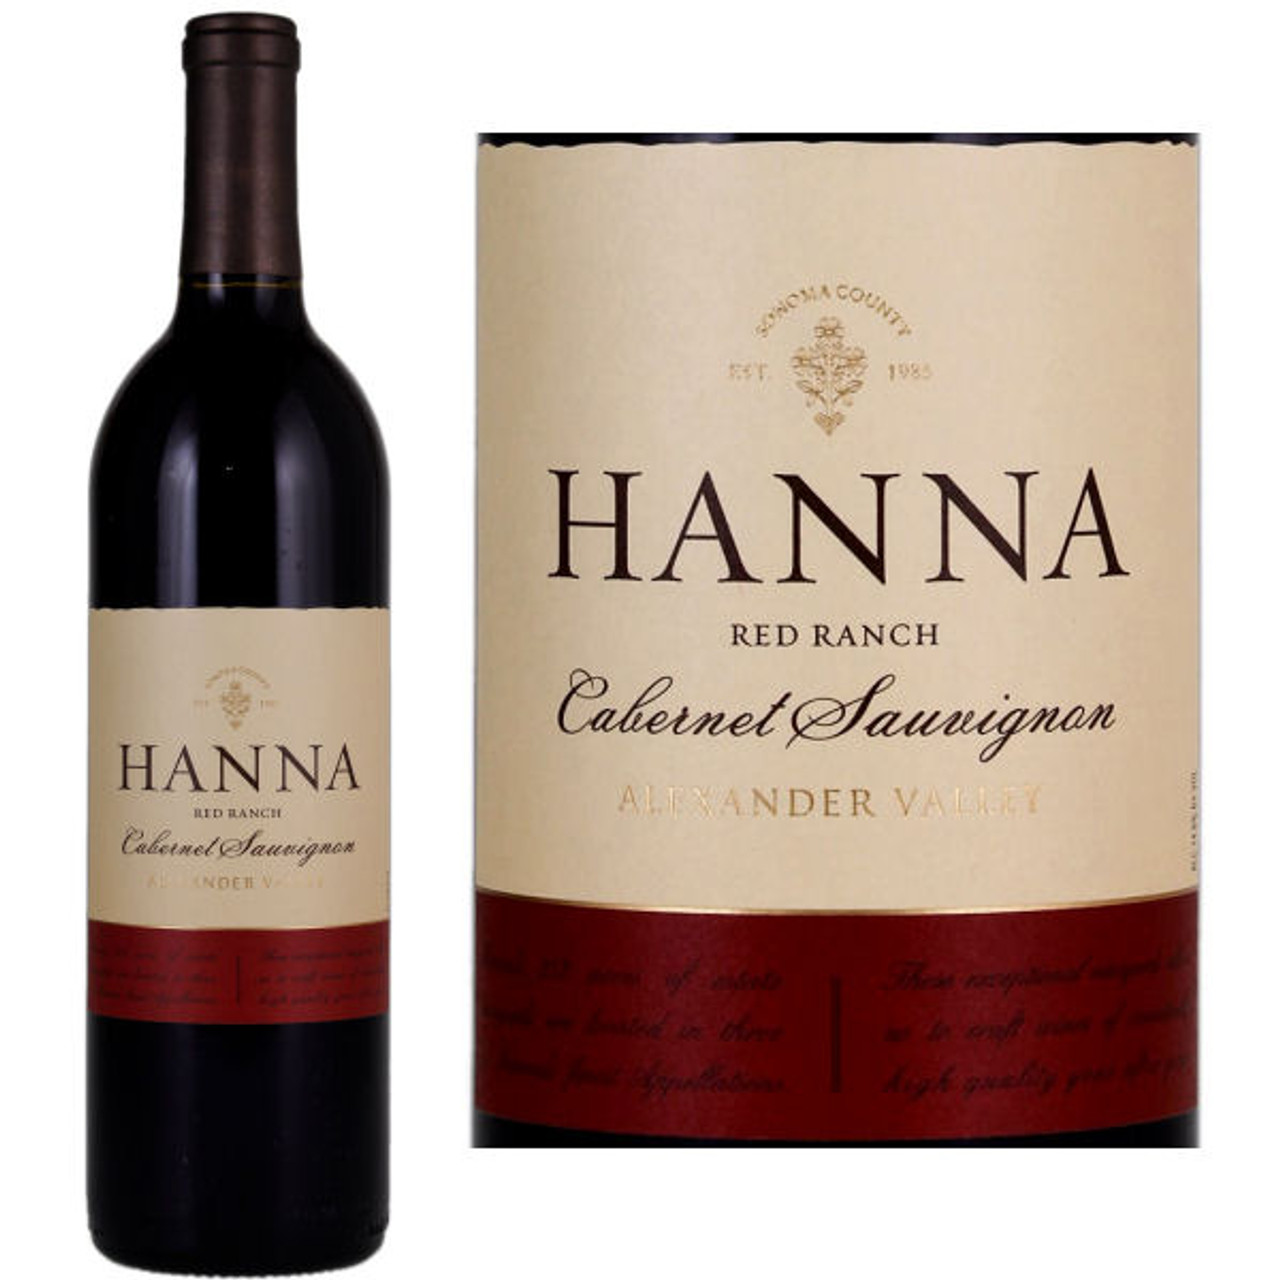 Hanna Red Ranch Alexander Cabernet